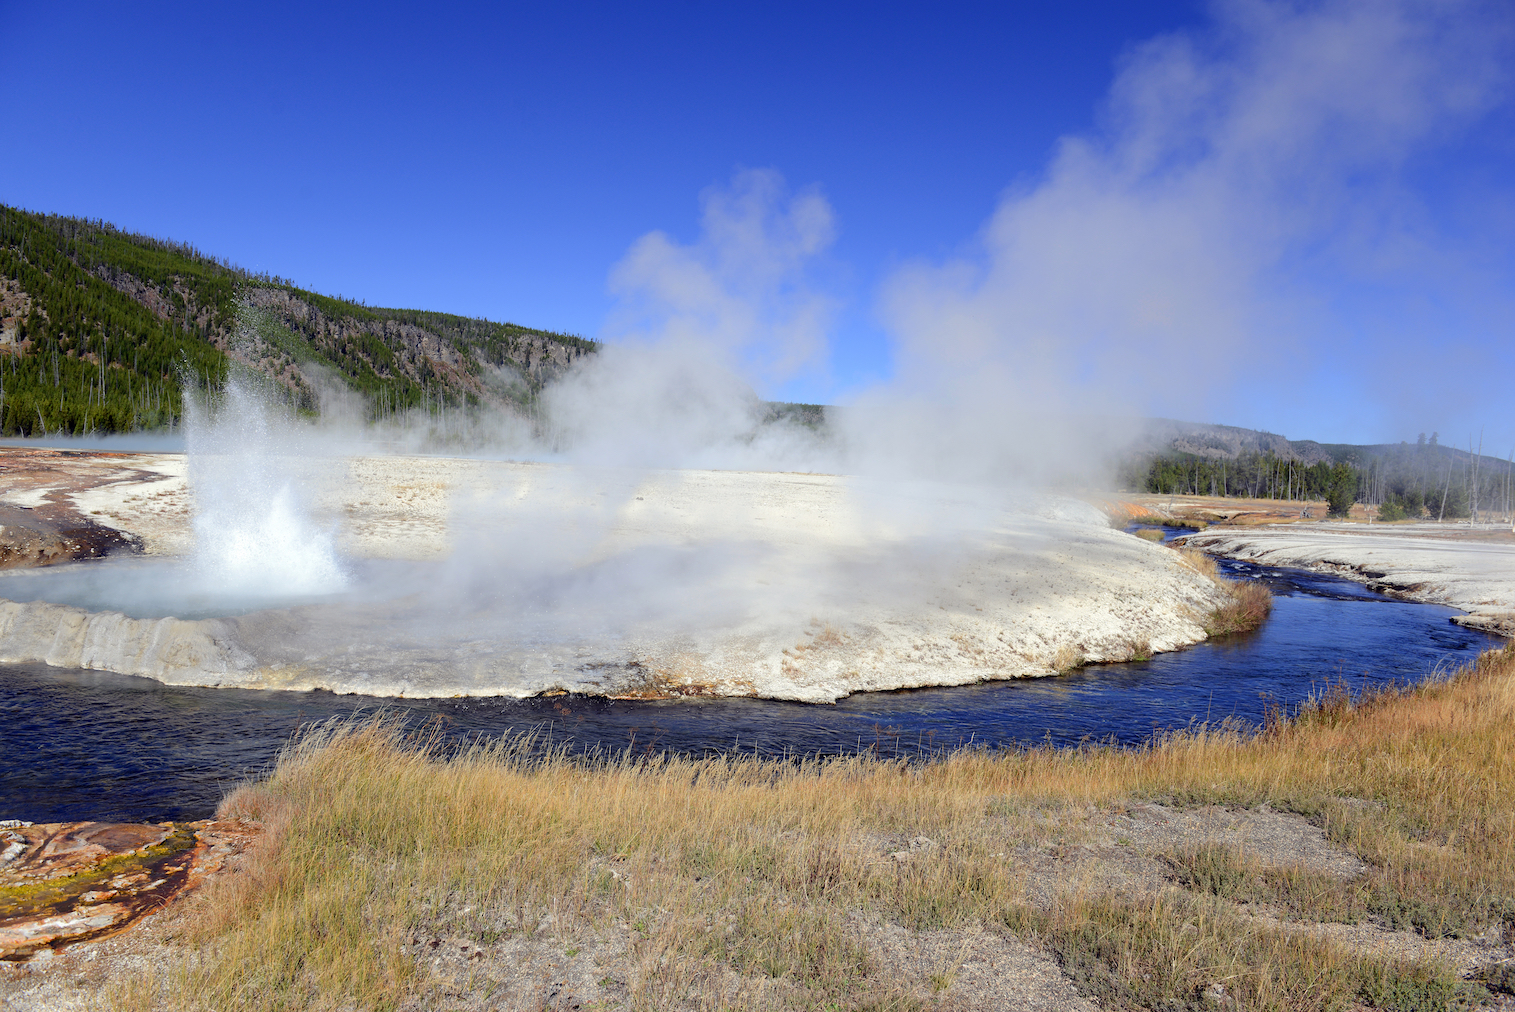 A study led by researchers at the University of Illinois has found that there are clear geological signs that provide ample warning before a supervolcano eruption.